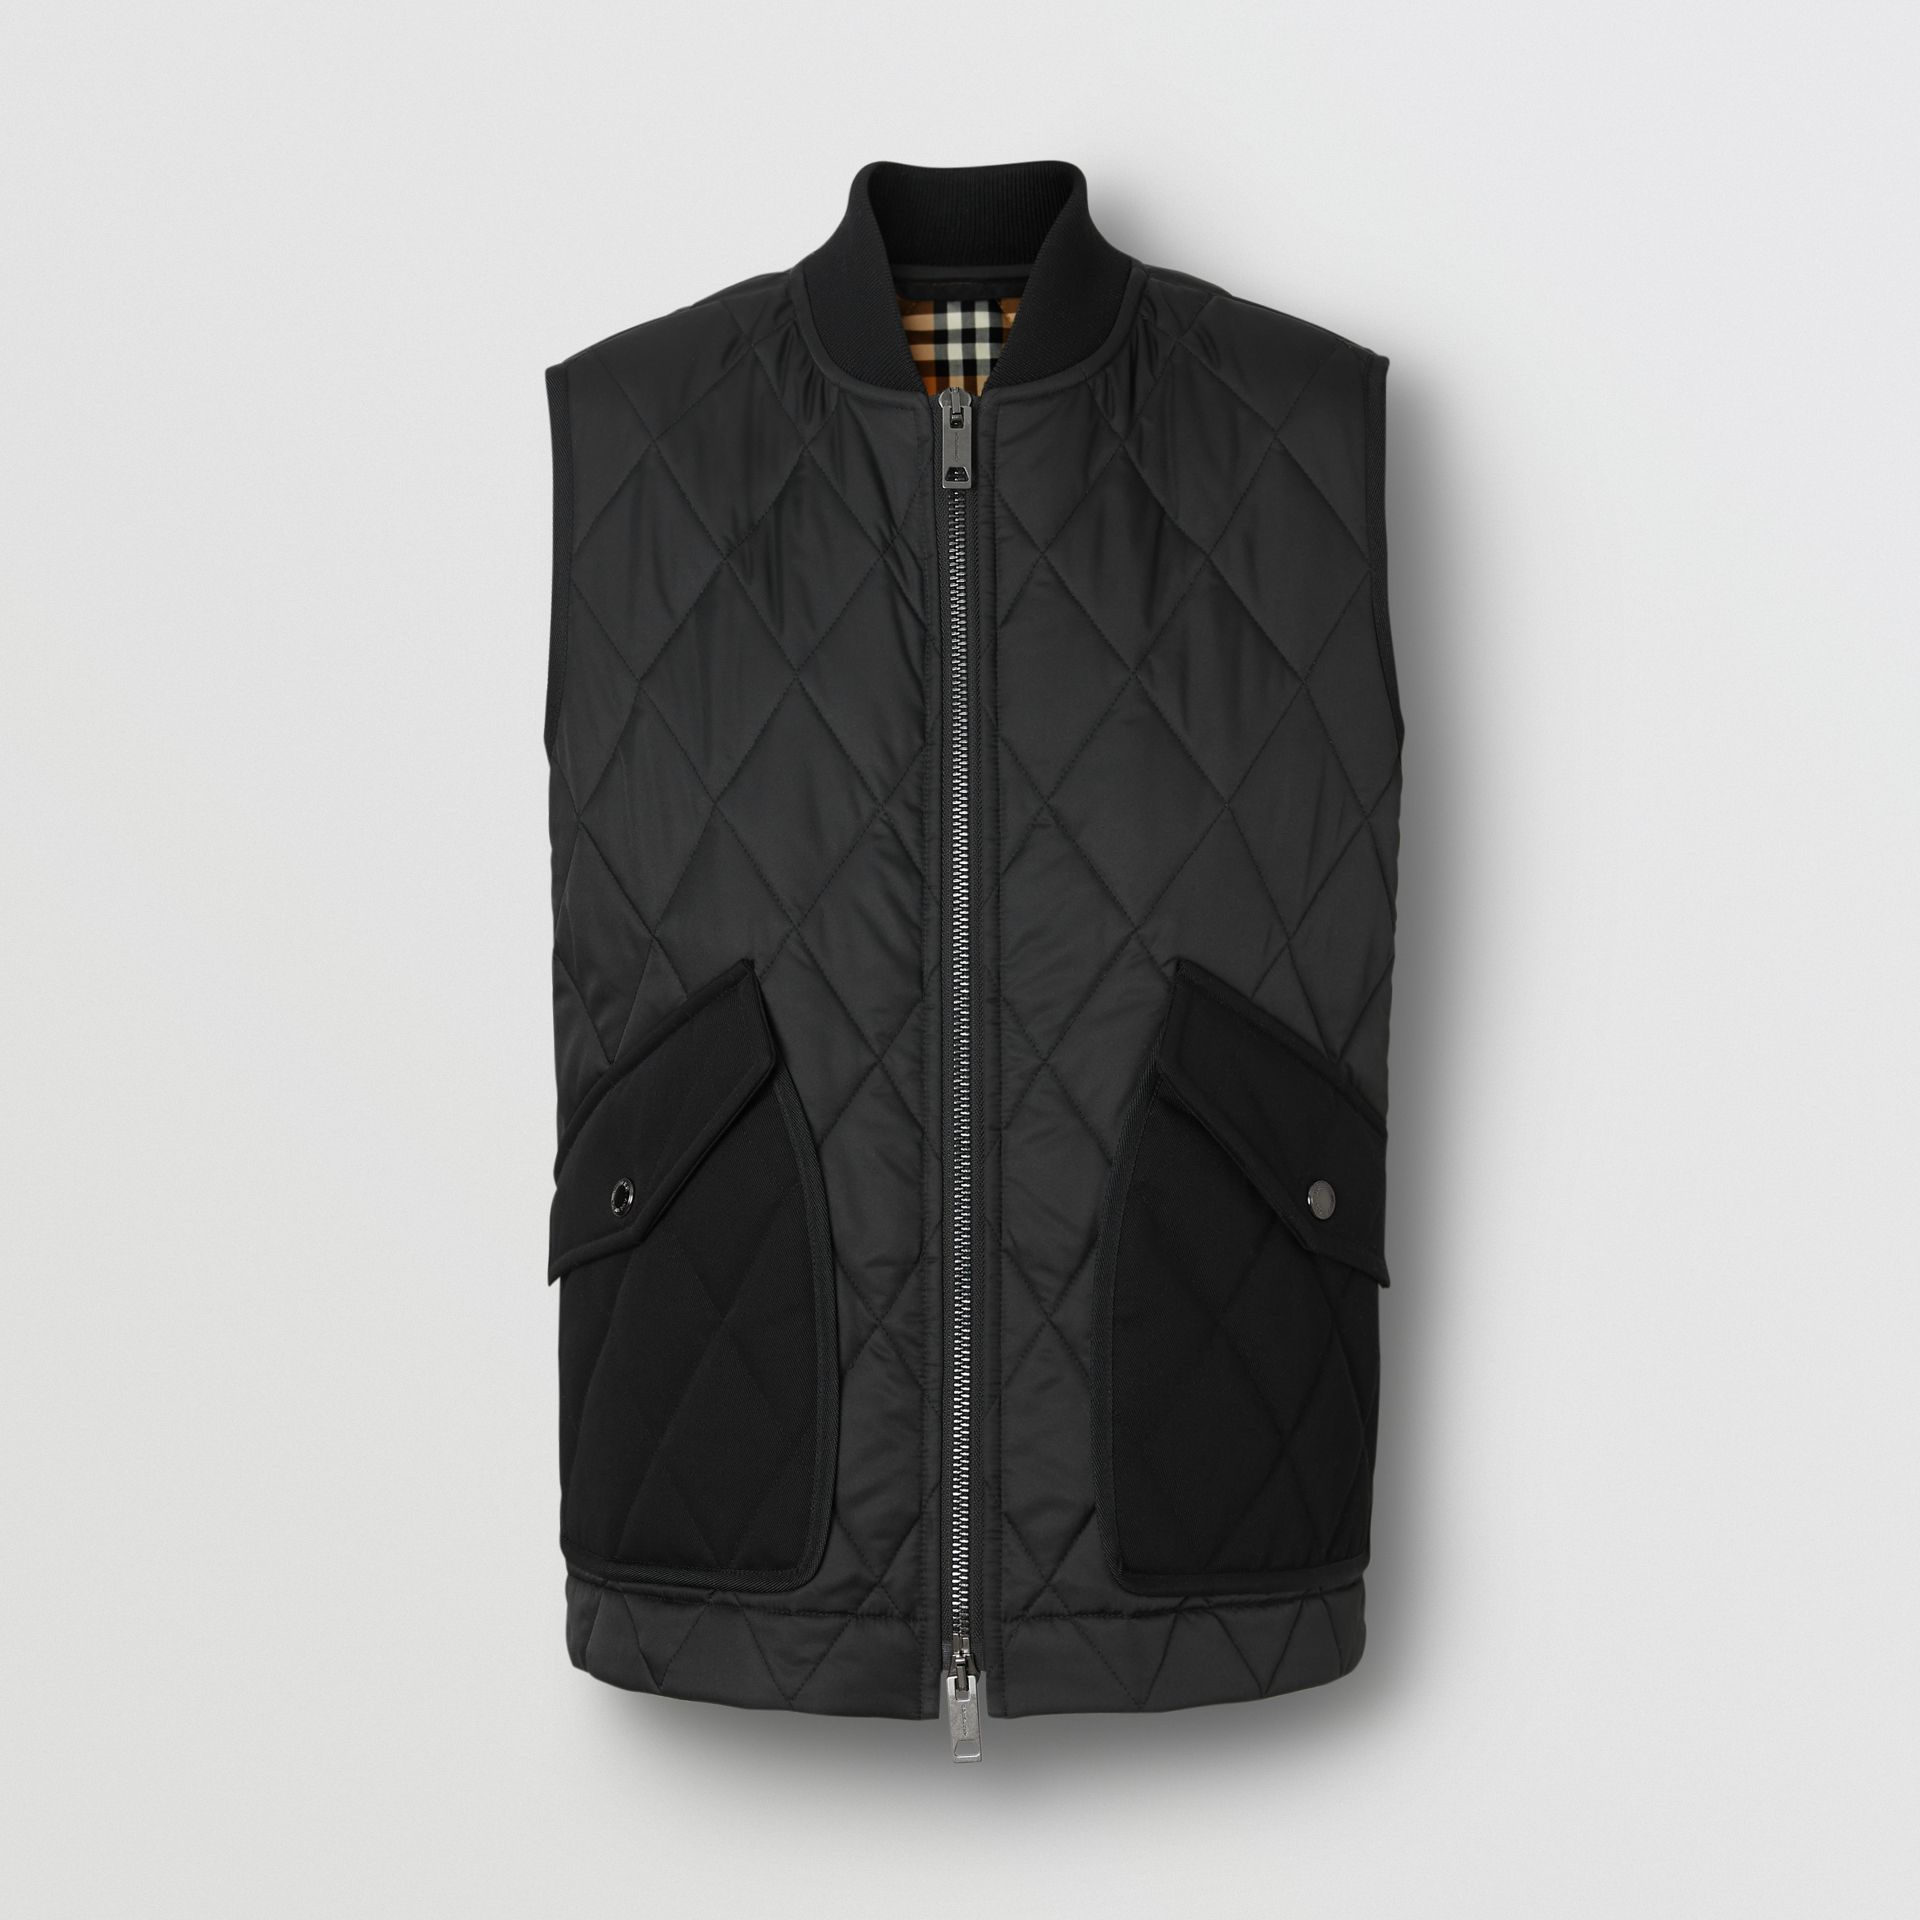 Monogram Motif Diamond Quilted Gilet in Black - Women | Burberry United Kingdom - gallery image 3